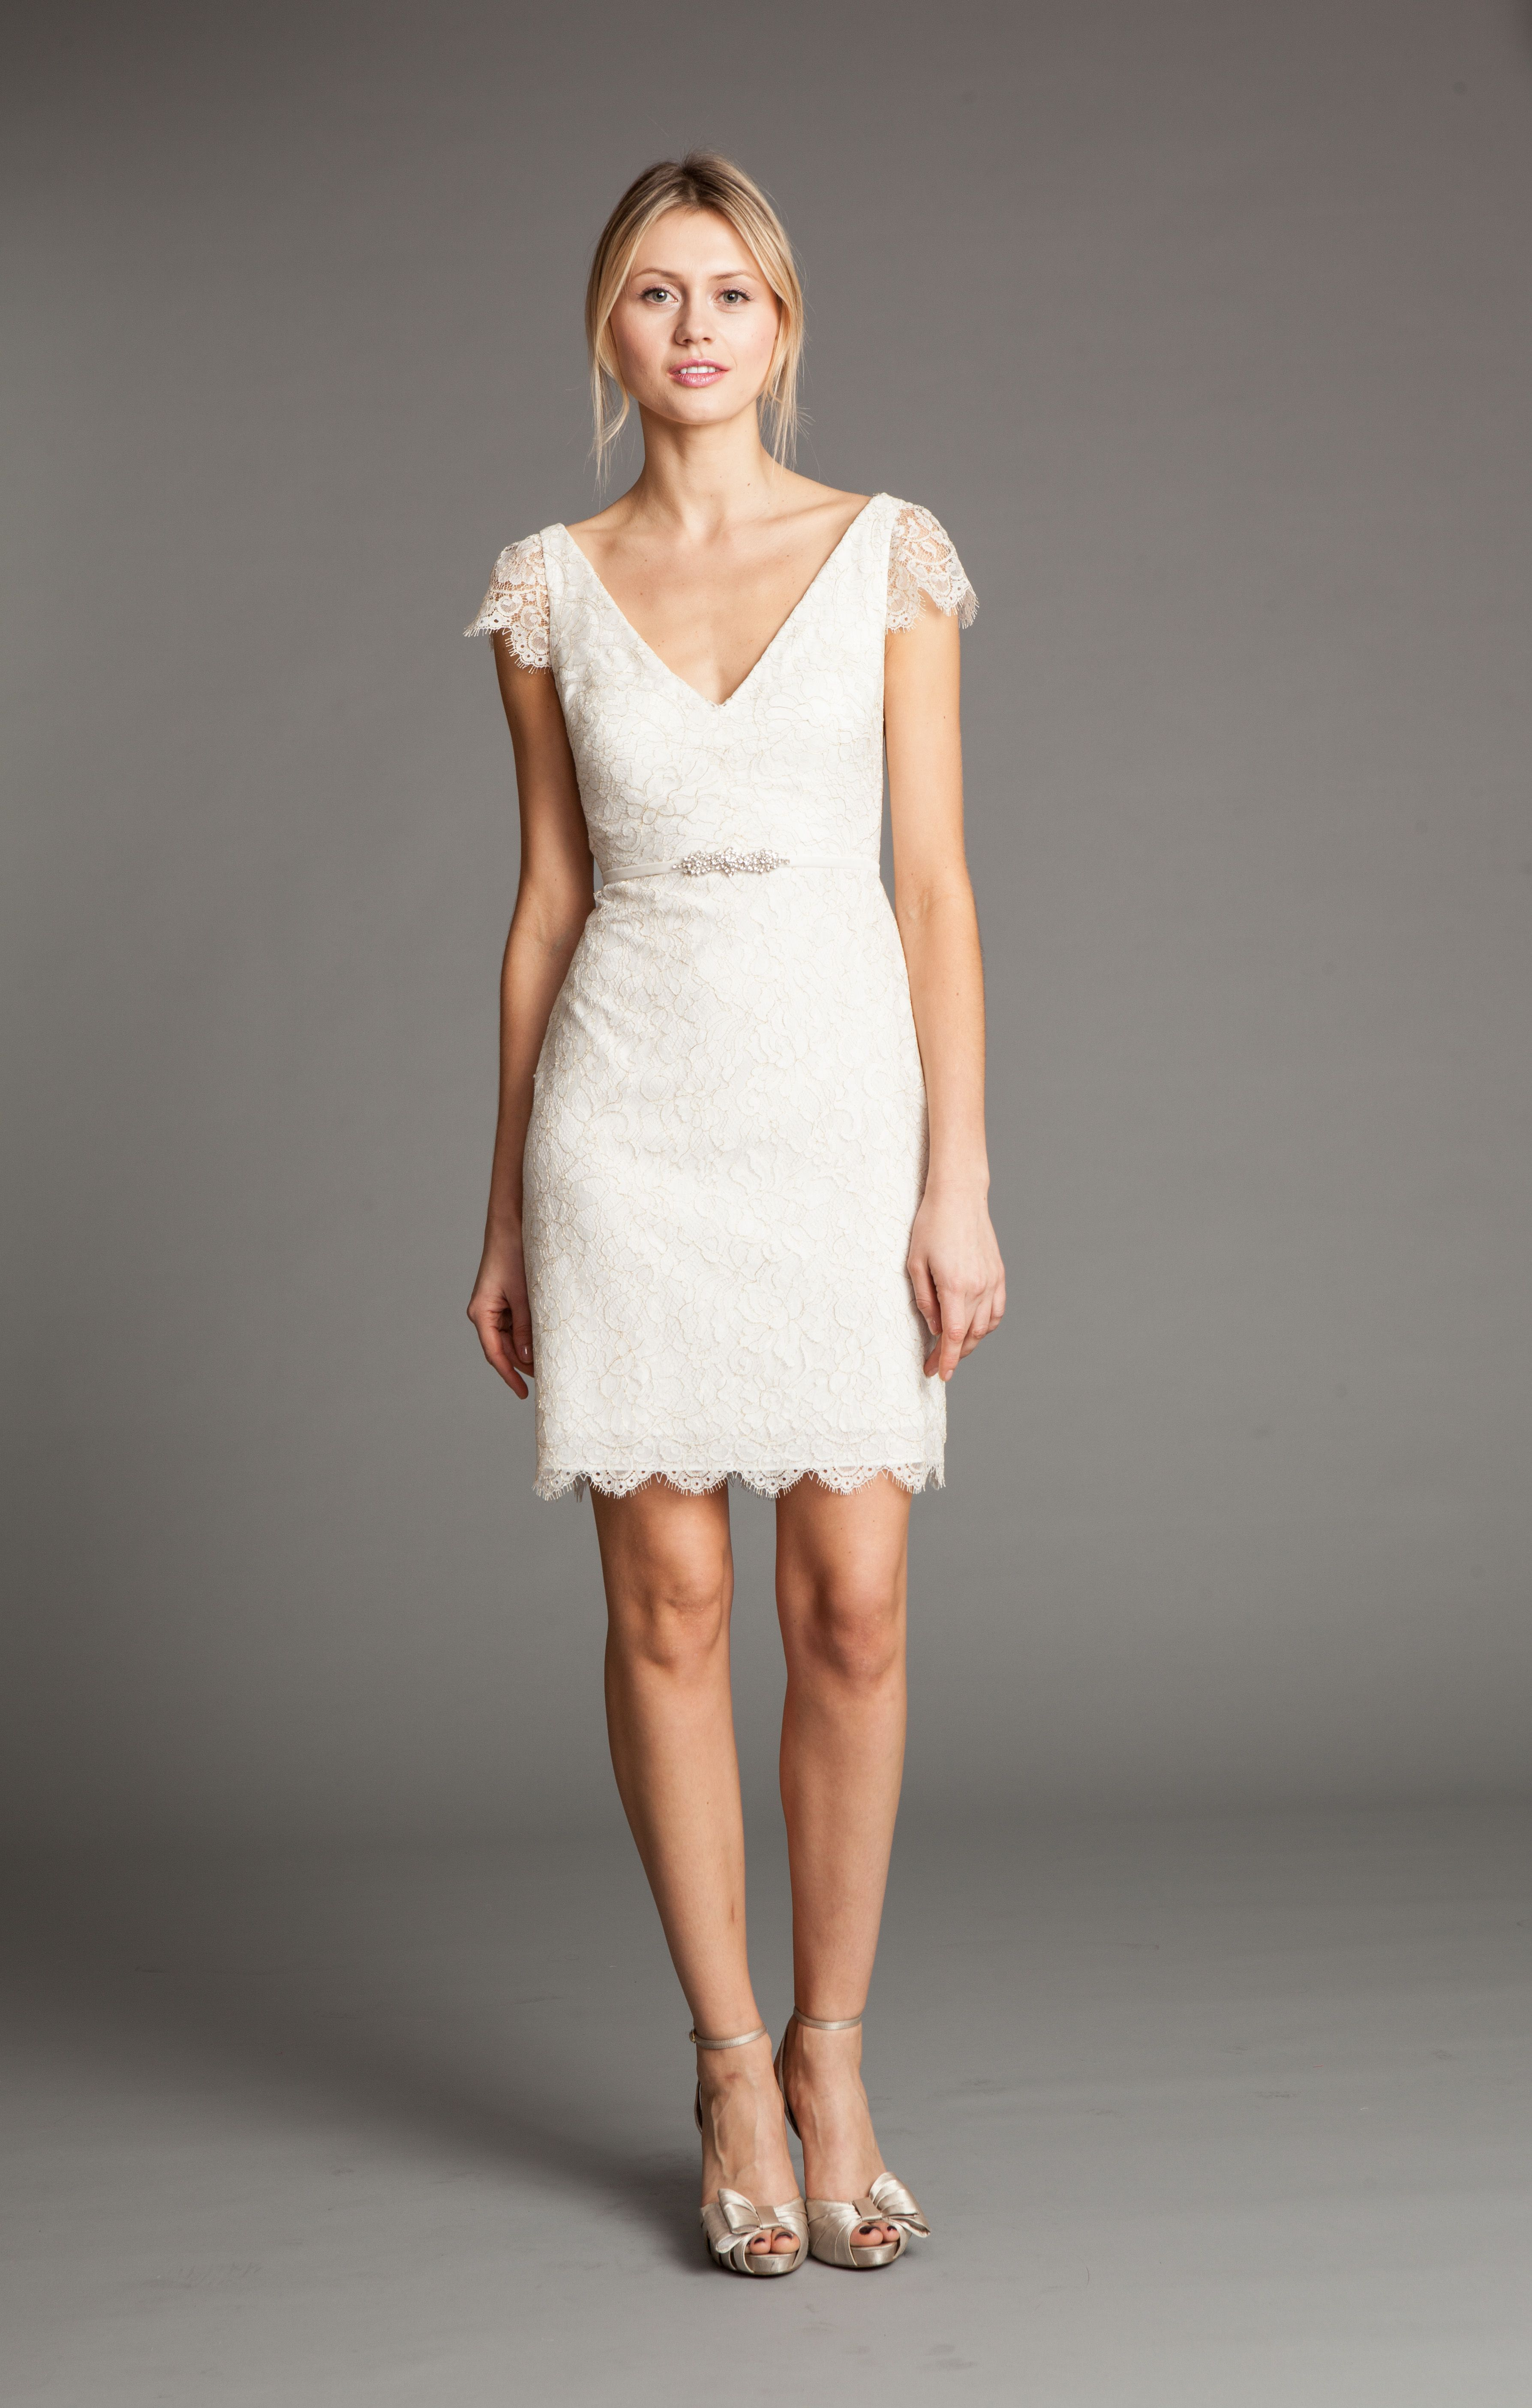 Bridgitte by Jenny Yoo-perfect for Rehearsal Dinner or Bridal Shower $320 http://www.jennyyoo.com/lace04.html